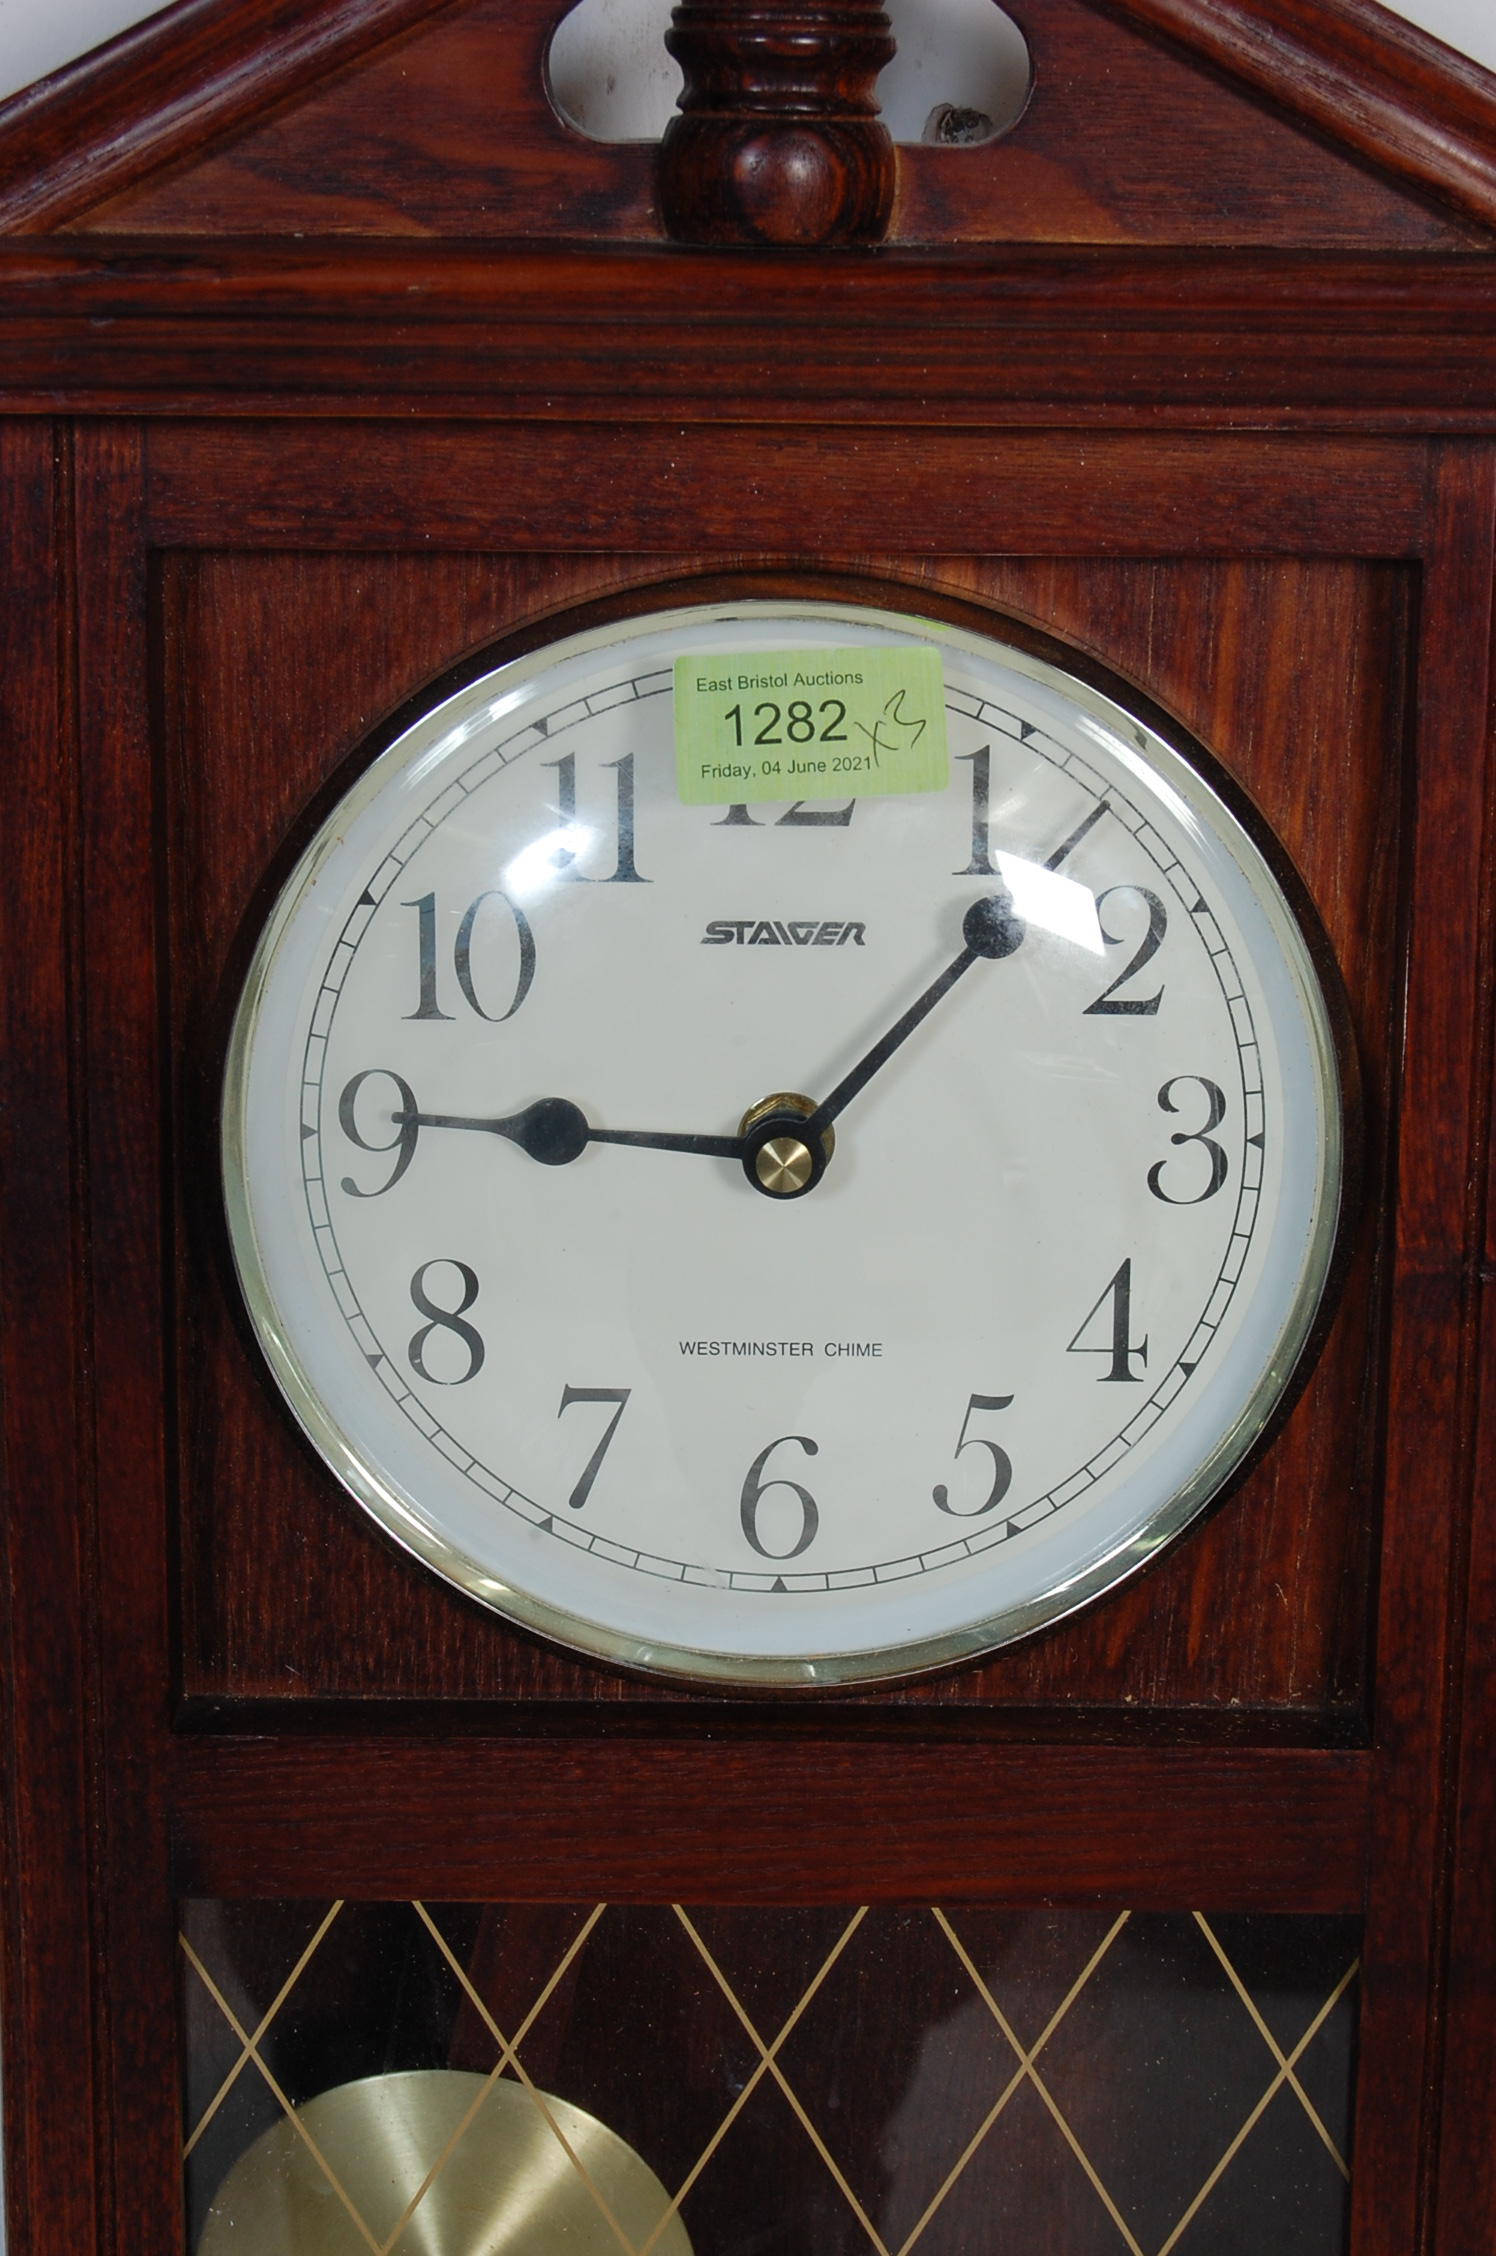 COLLECTION OF FOUR VINTAGE 20TH CENTURY WALL HANGING CLOCKS - Image 6 of 8